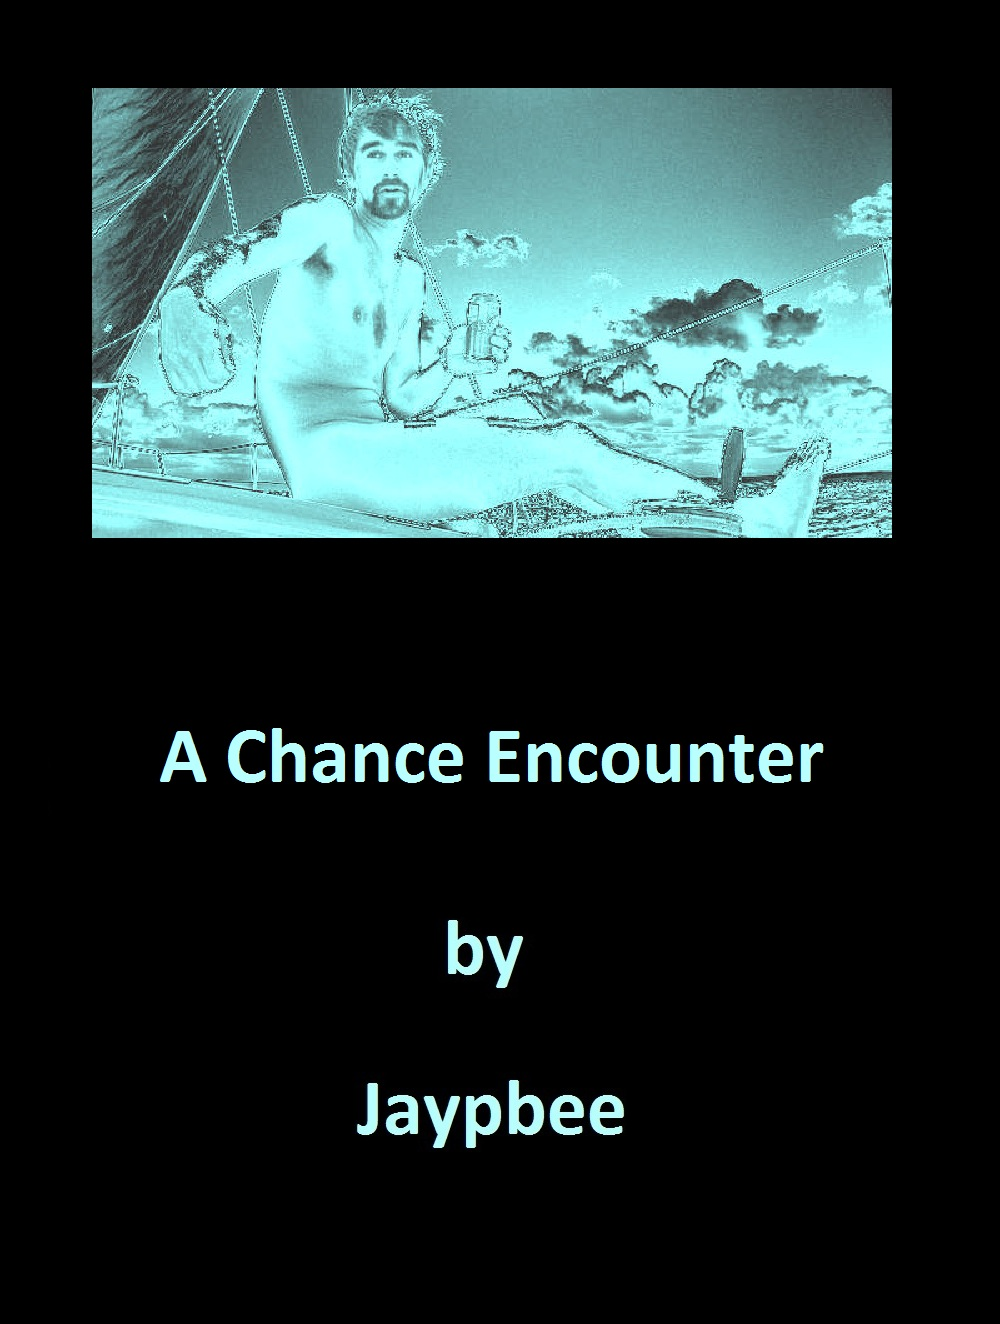 A Chance Encounter